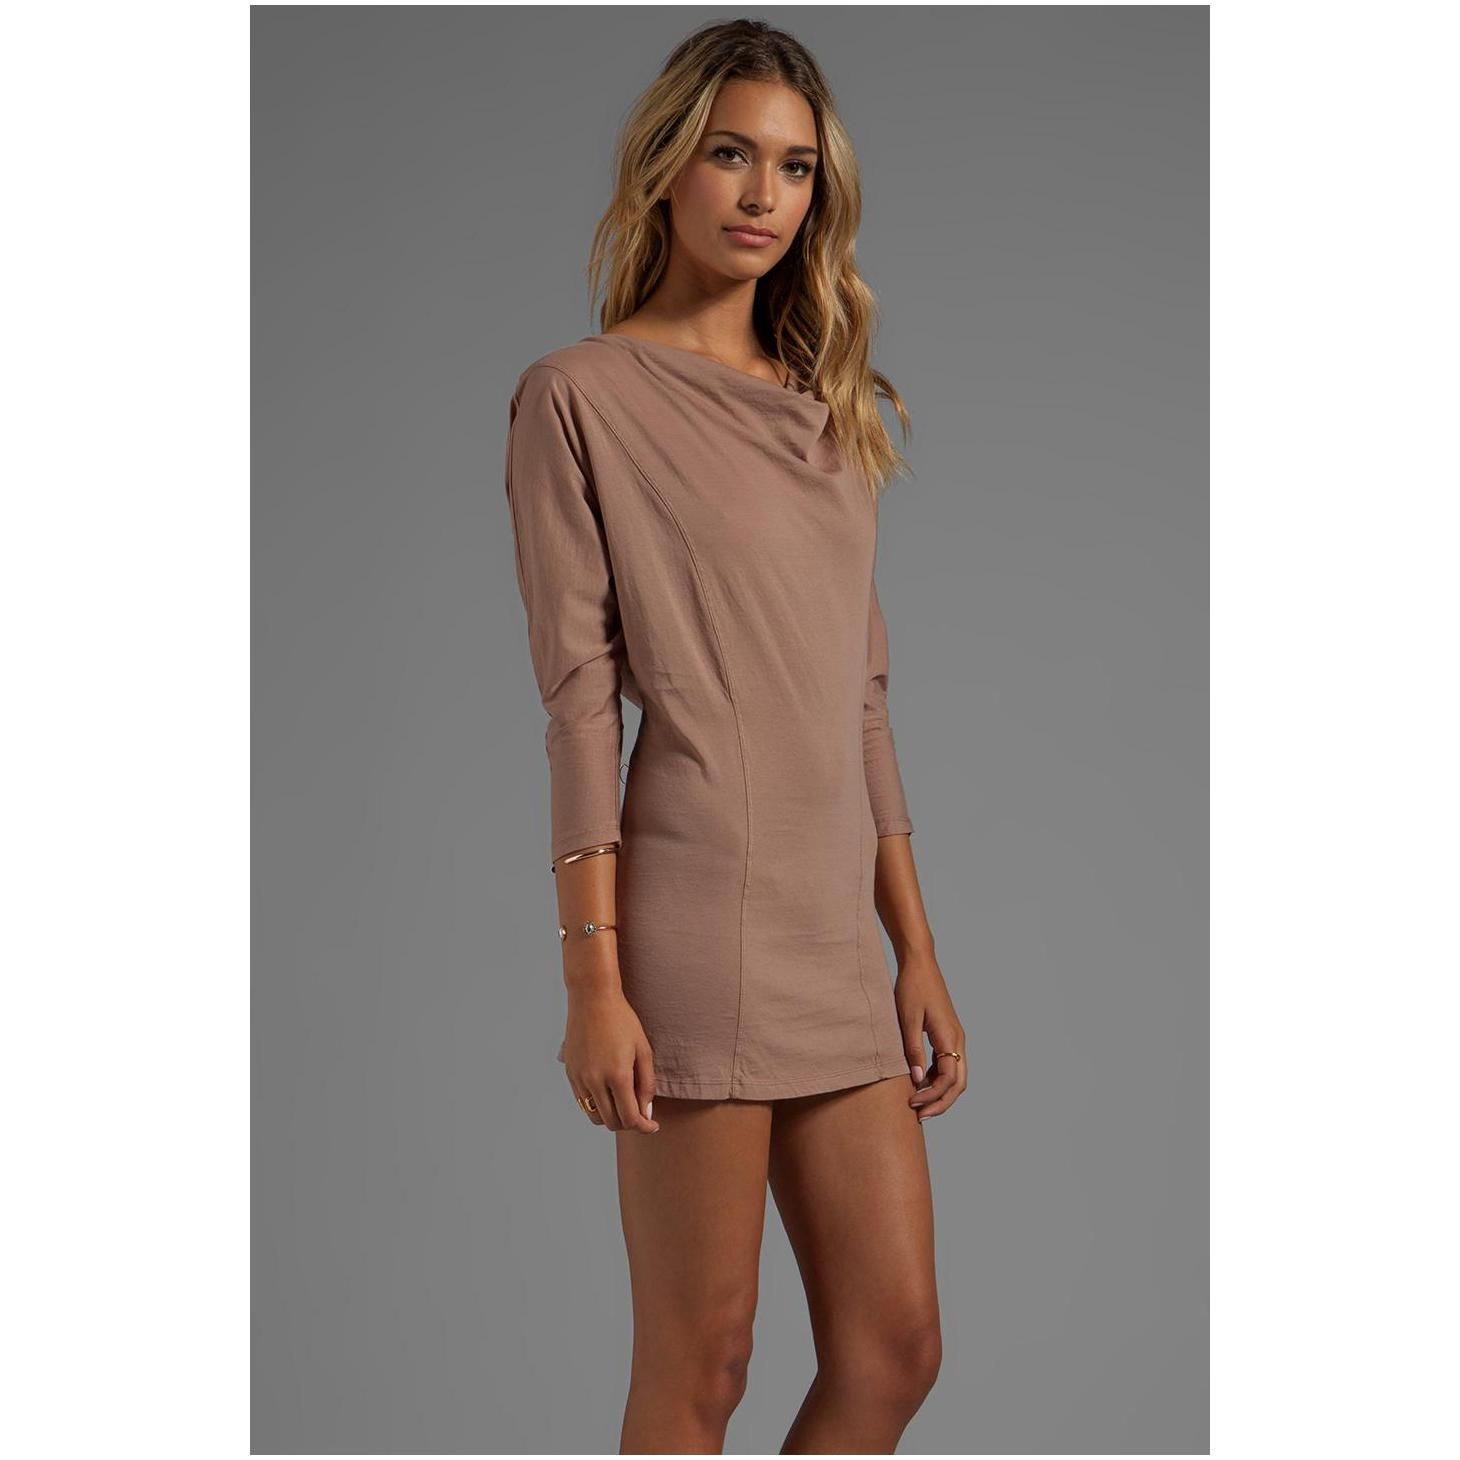 Bobi Supreme Jersey Long Sleeve Knot Mini Dress in Black | REVOLVE ...